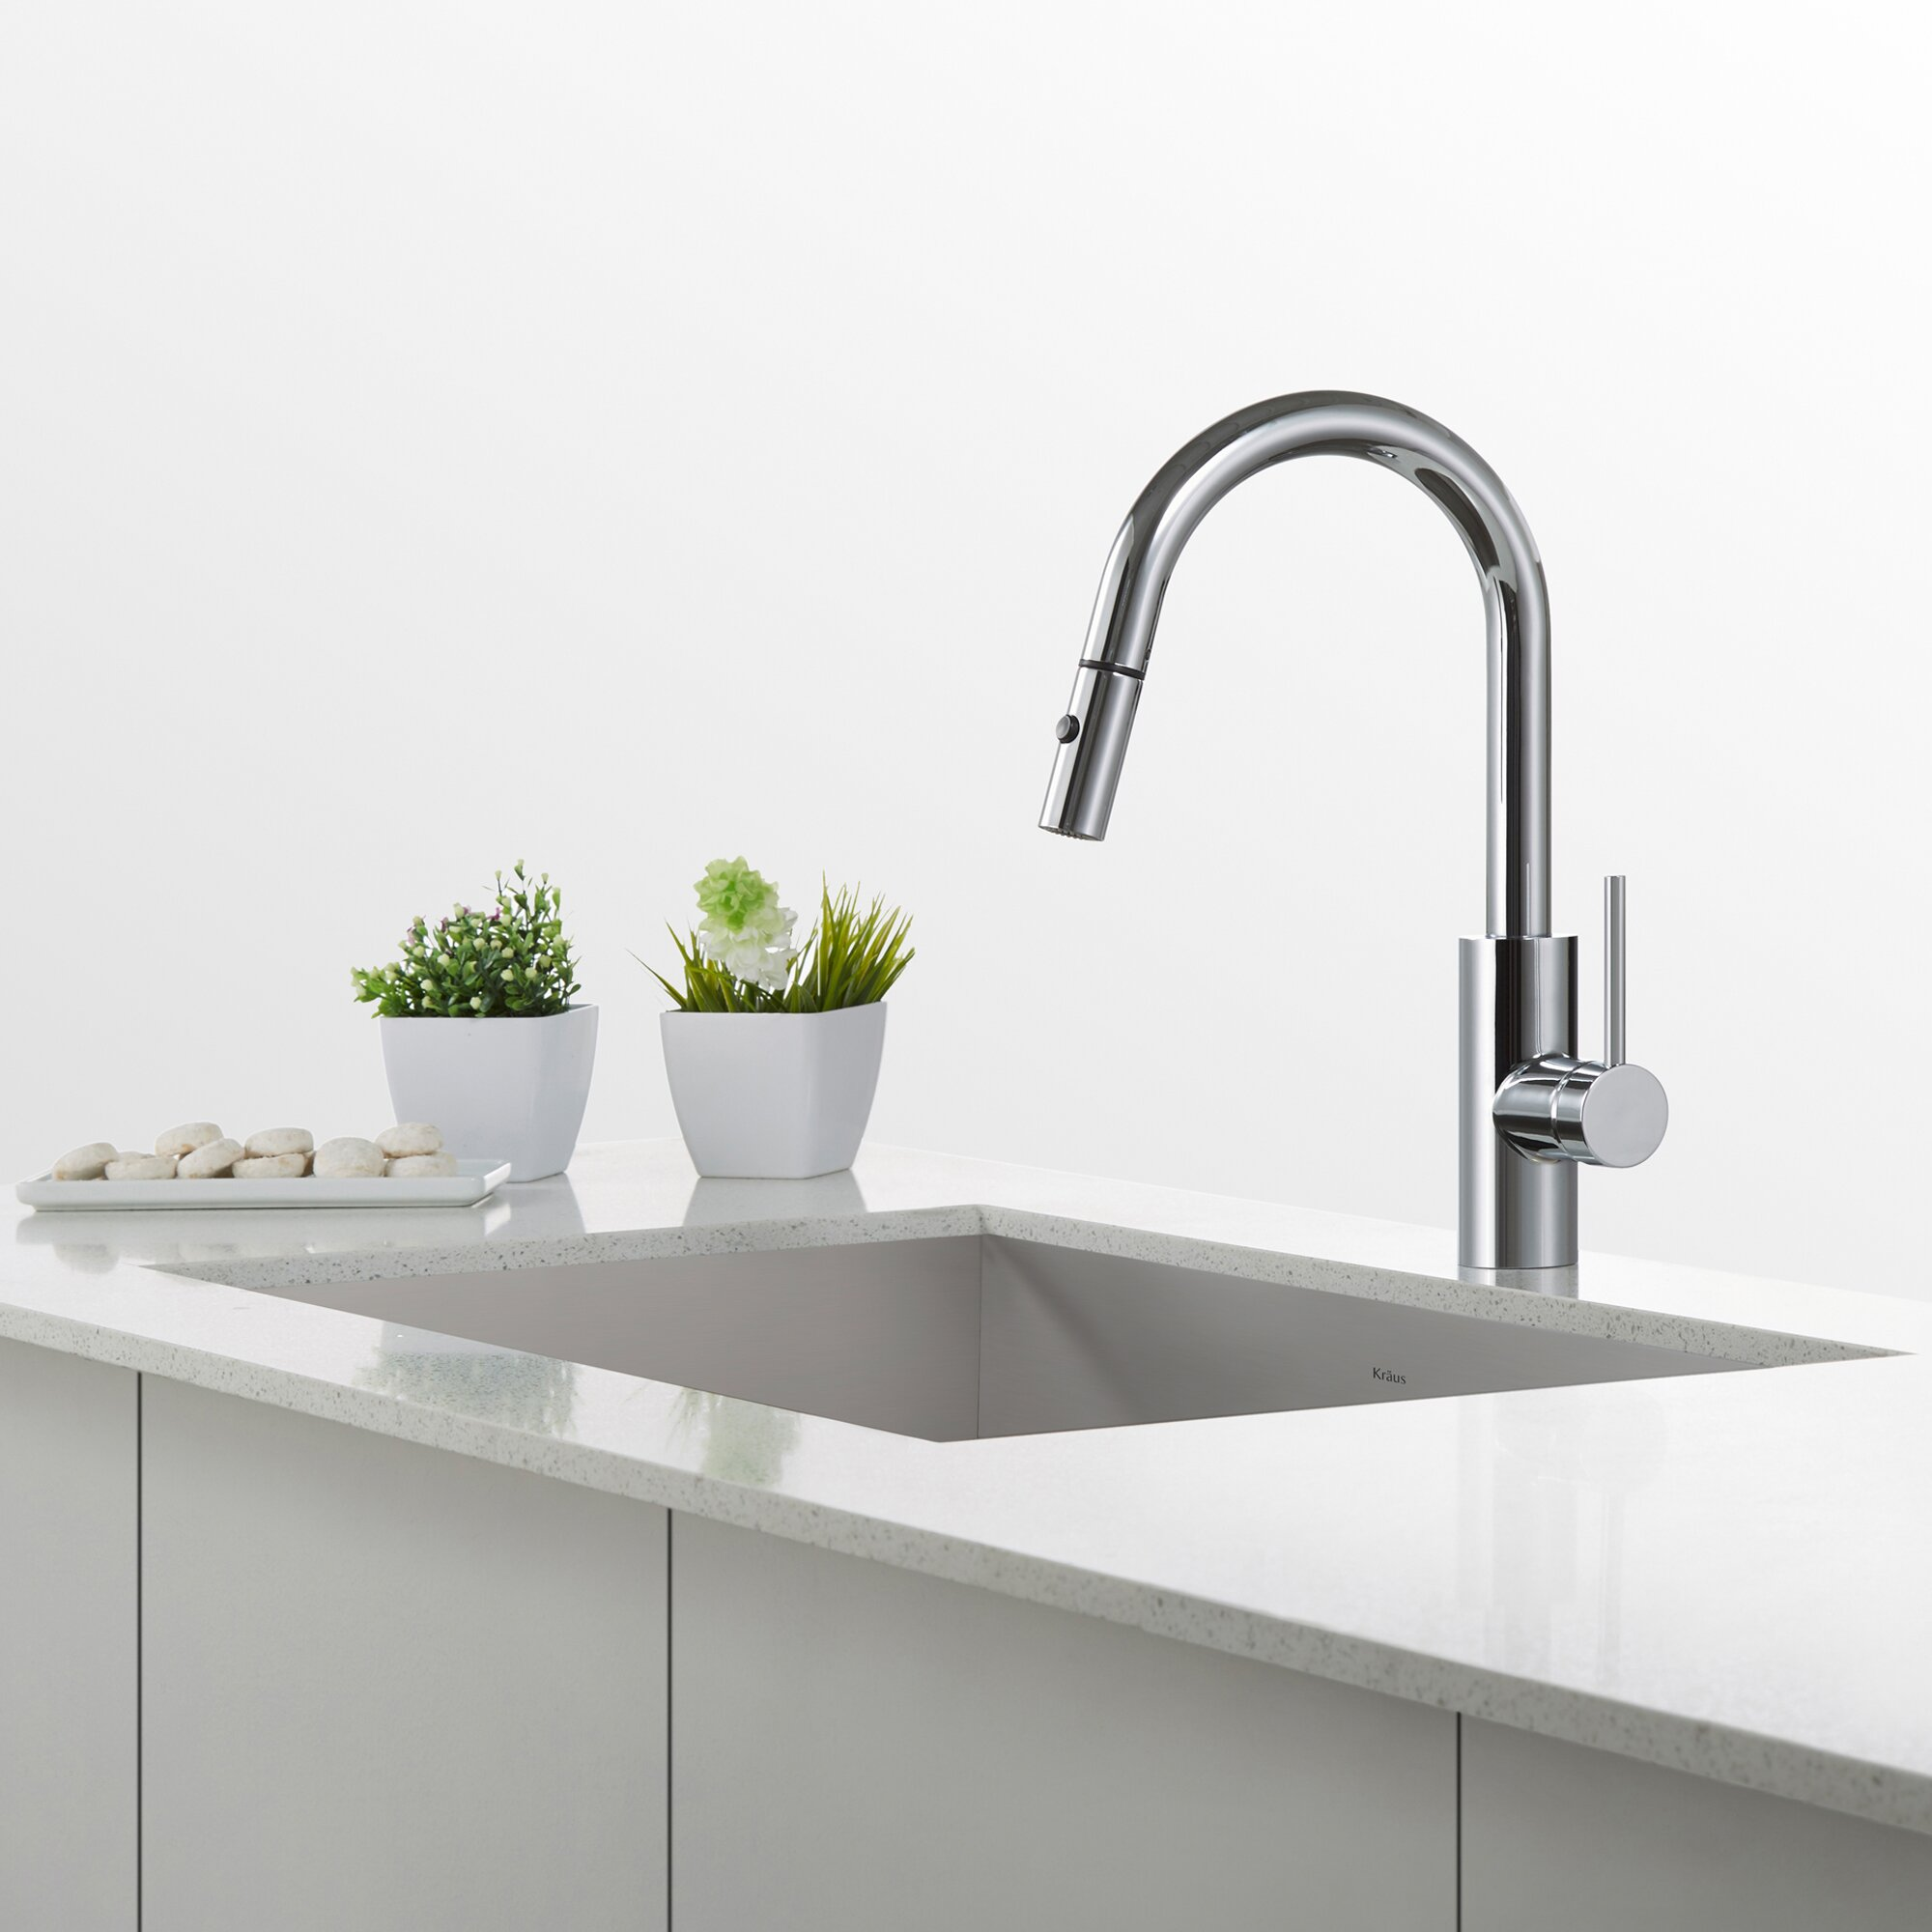 Kraus Mateo Pull Down Kitchen Faucet With Bar Prep Faucet